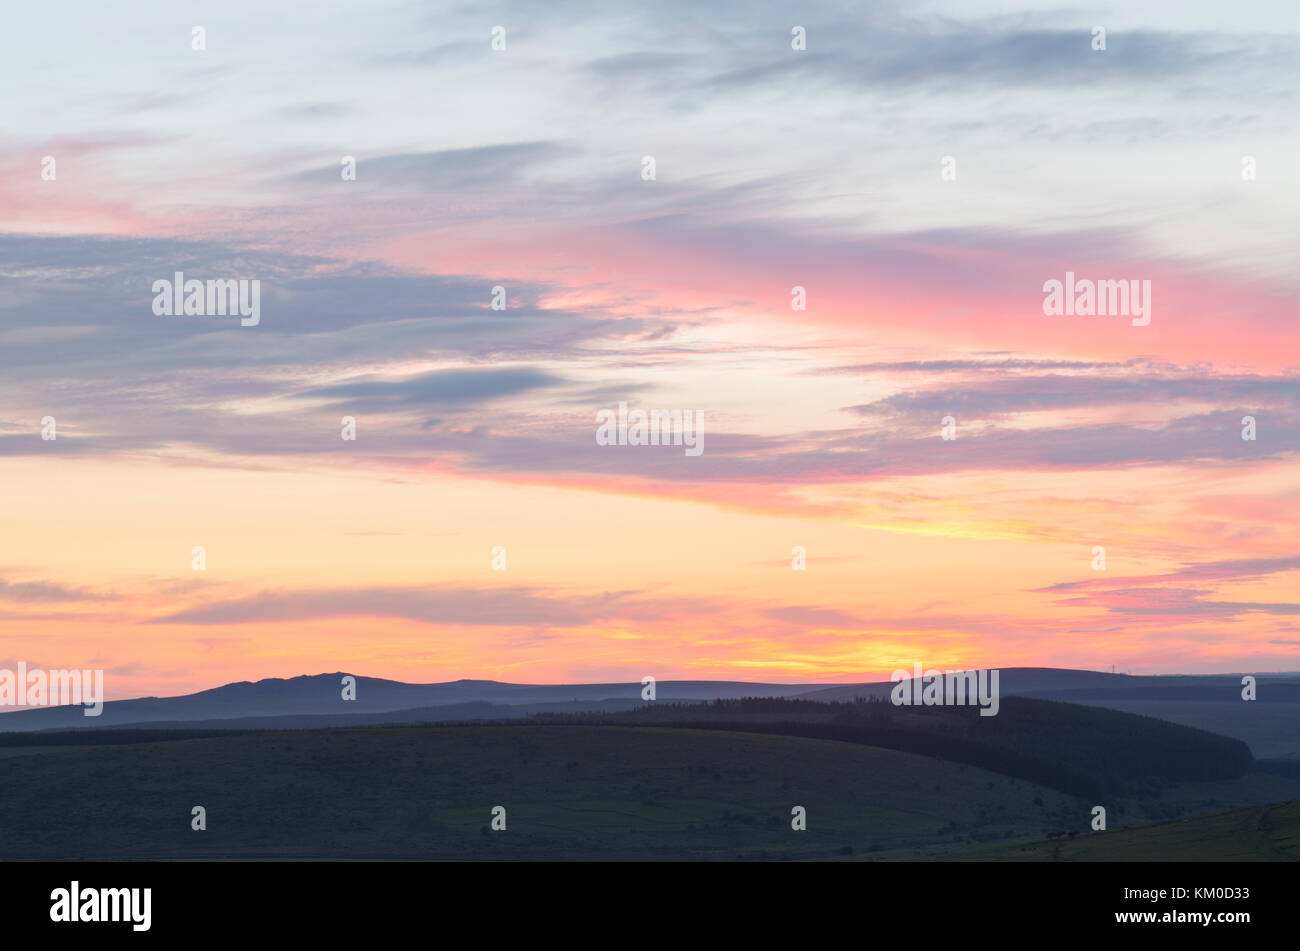 Sunset on Bodmin Moor - Stock Image